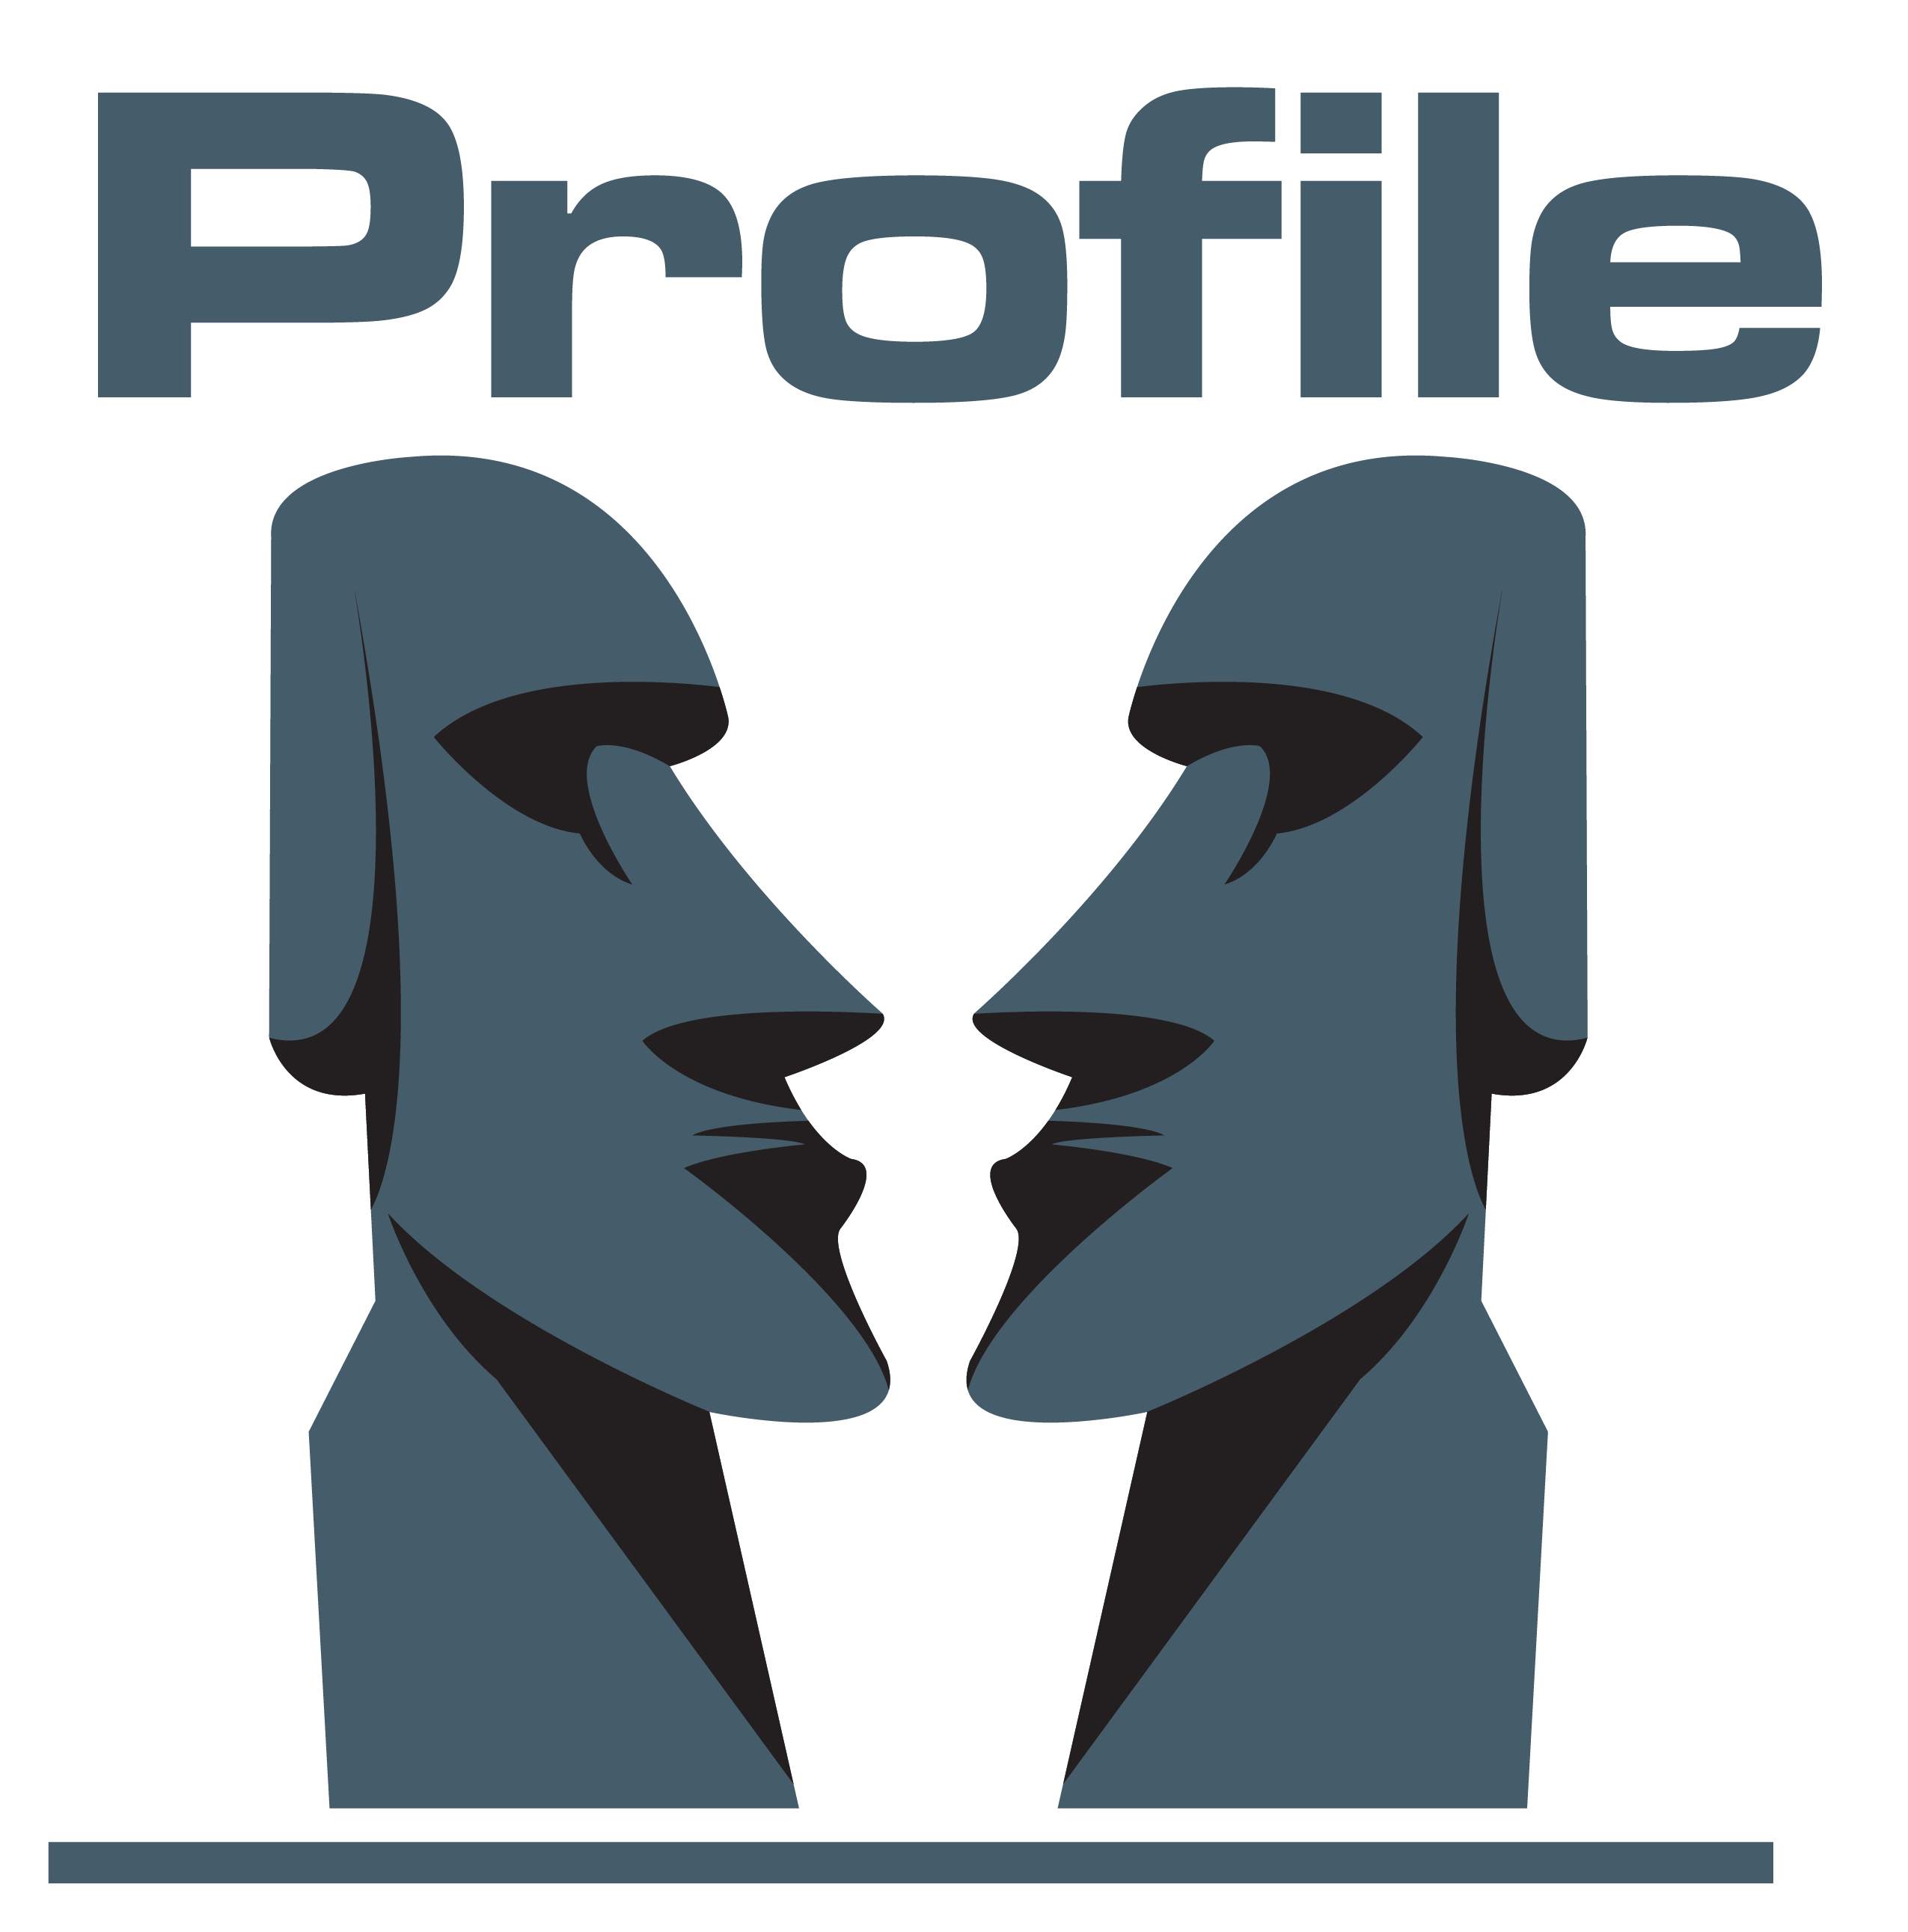 Profile - where readers meet authors